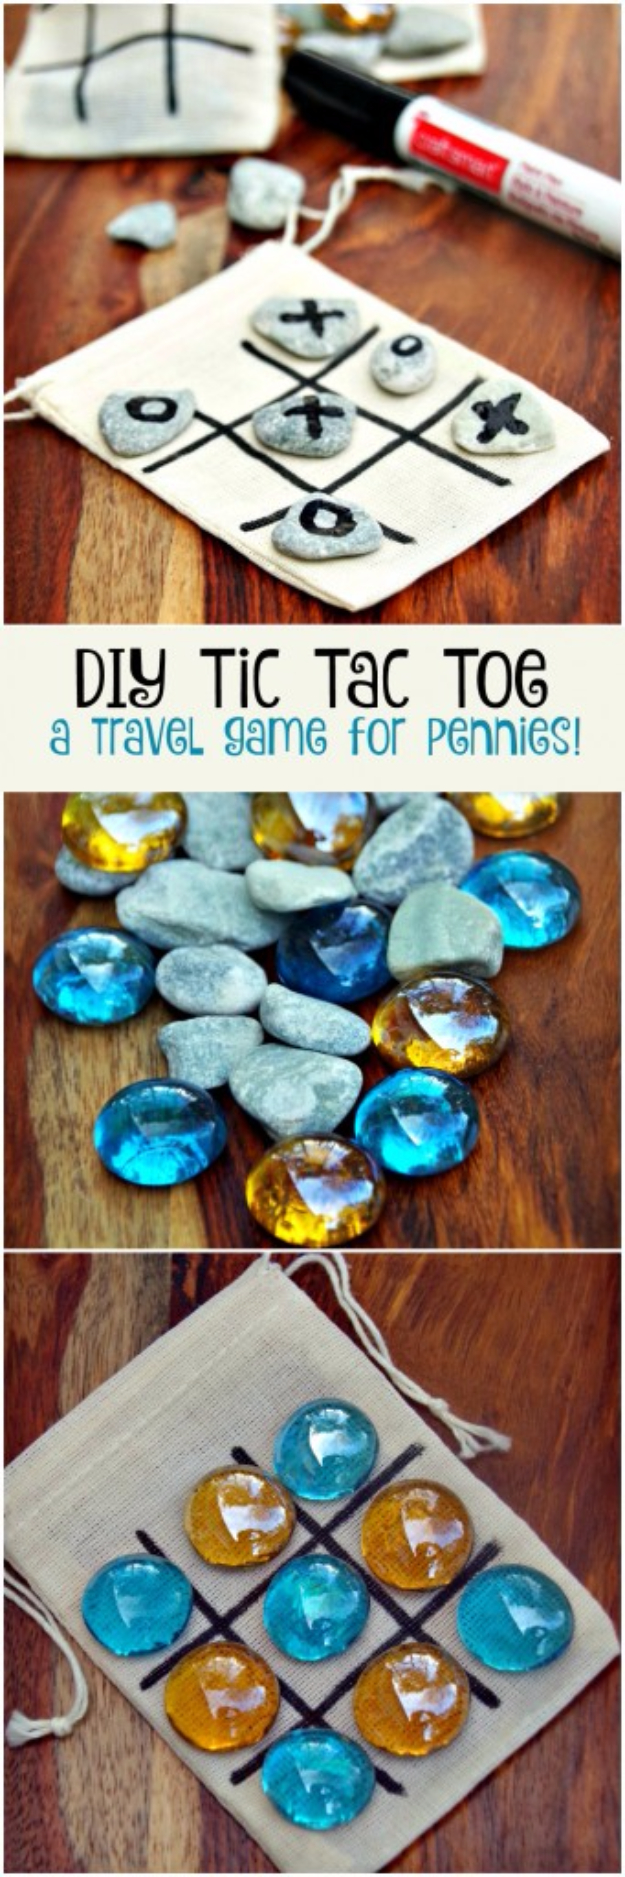 Easy Dollar Store Crafts - DIY Tic Tac Toe Game Board - Quick And Cheap Crafts To Make, Dollar Store Craft Ideas To Make And Sell, Cute Dollar Store Do It Yourself Projects, Cheap Craft Ideas, Dollar store Decor,